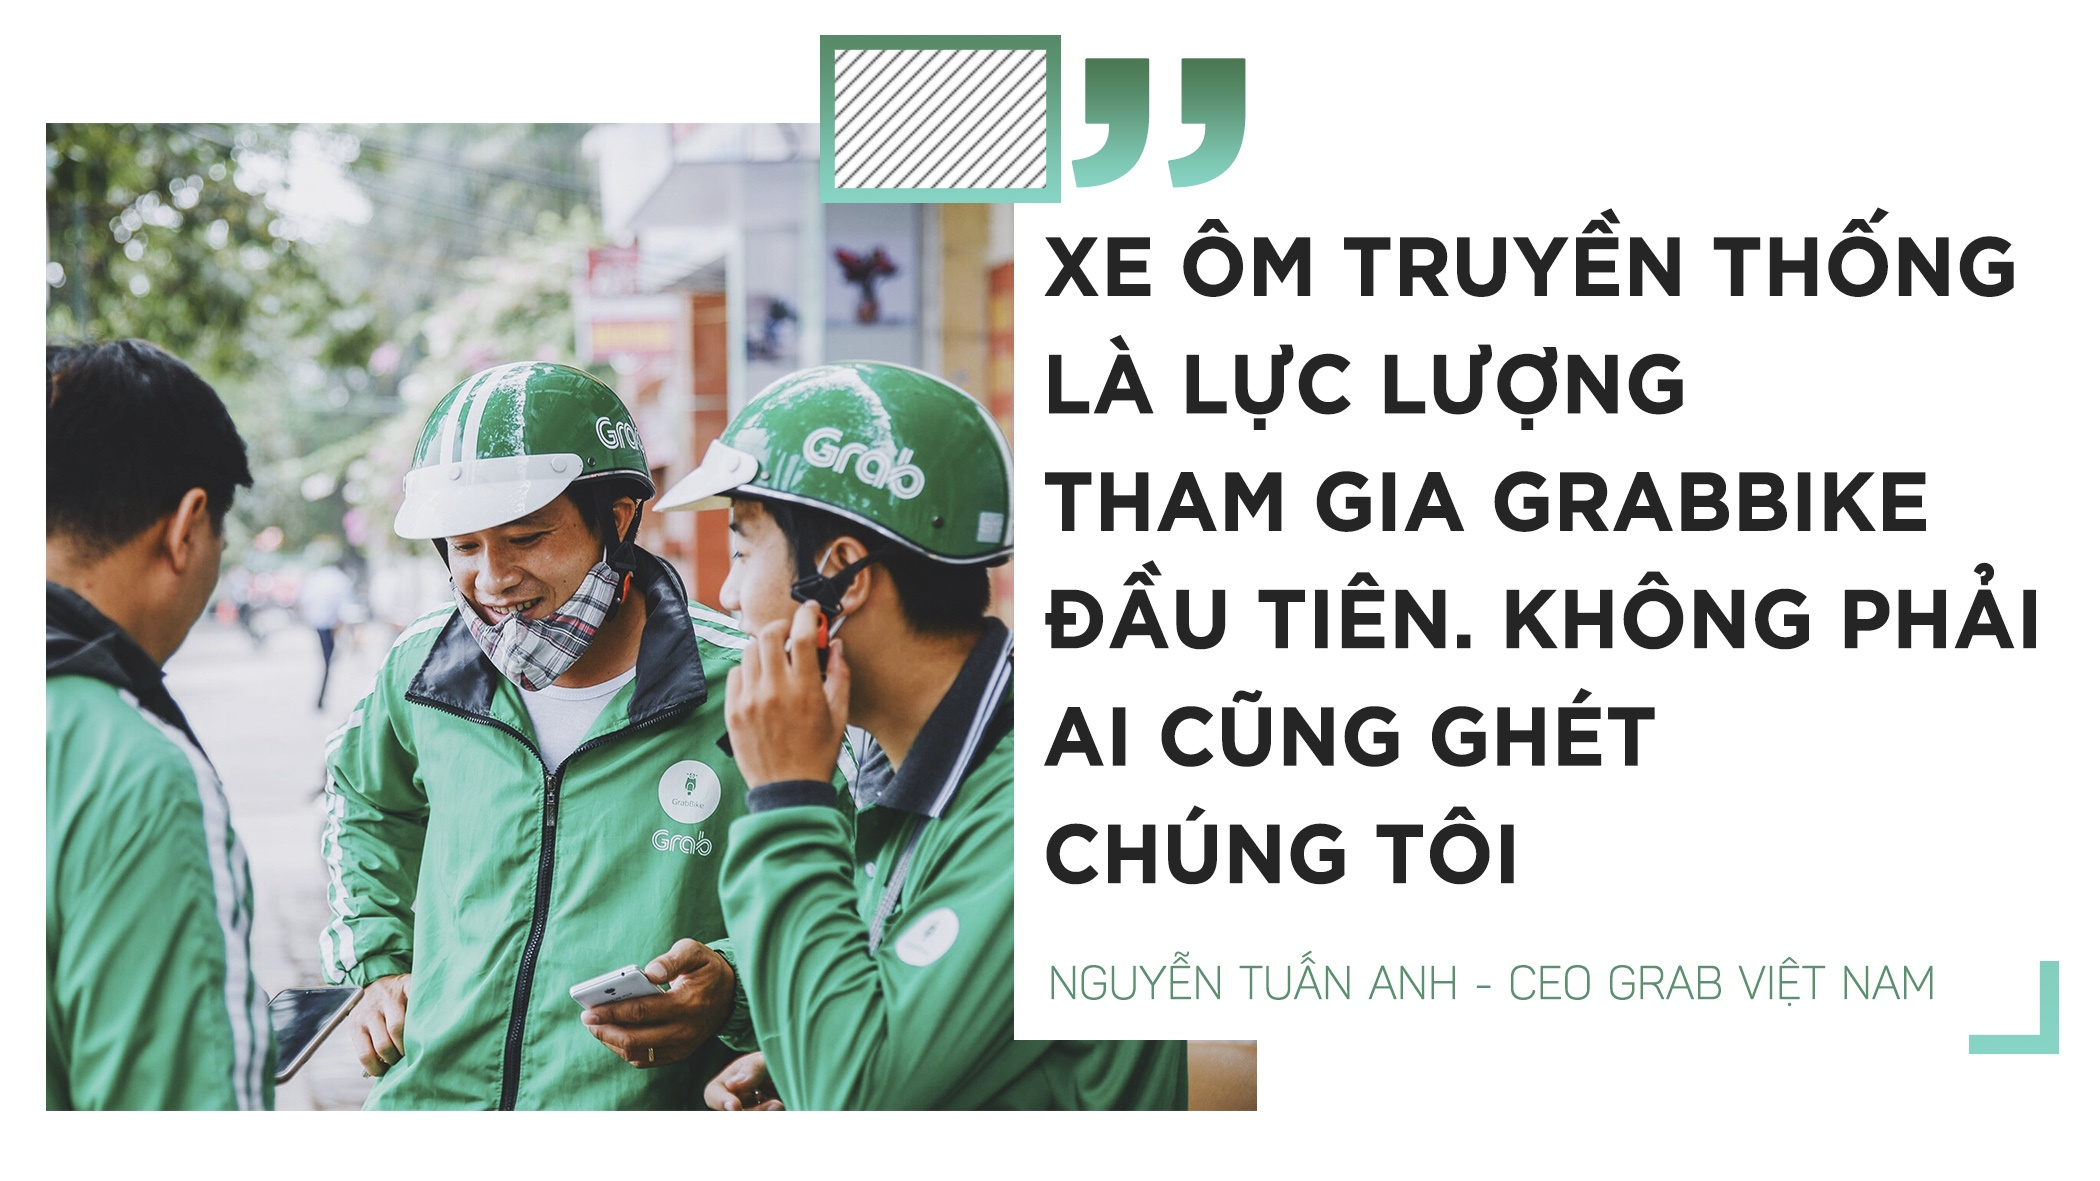 Uber, Grab voi cuoc chien gia cuoc xe om hinh anh 3